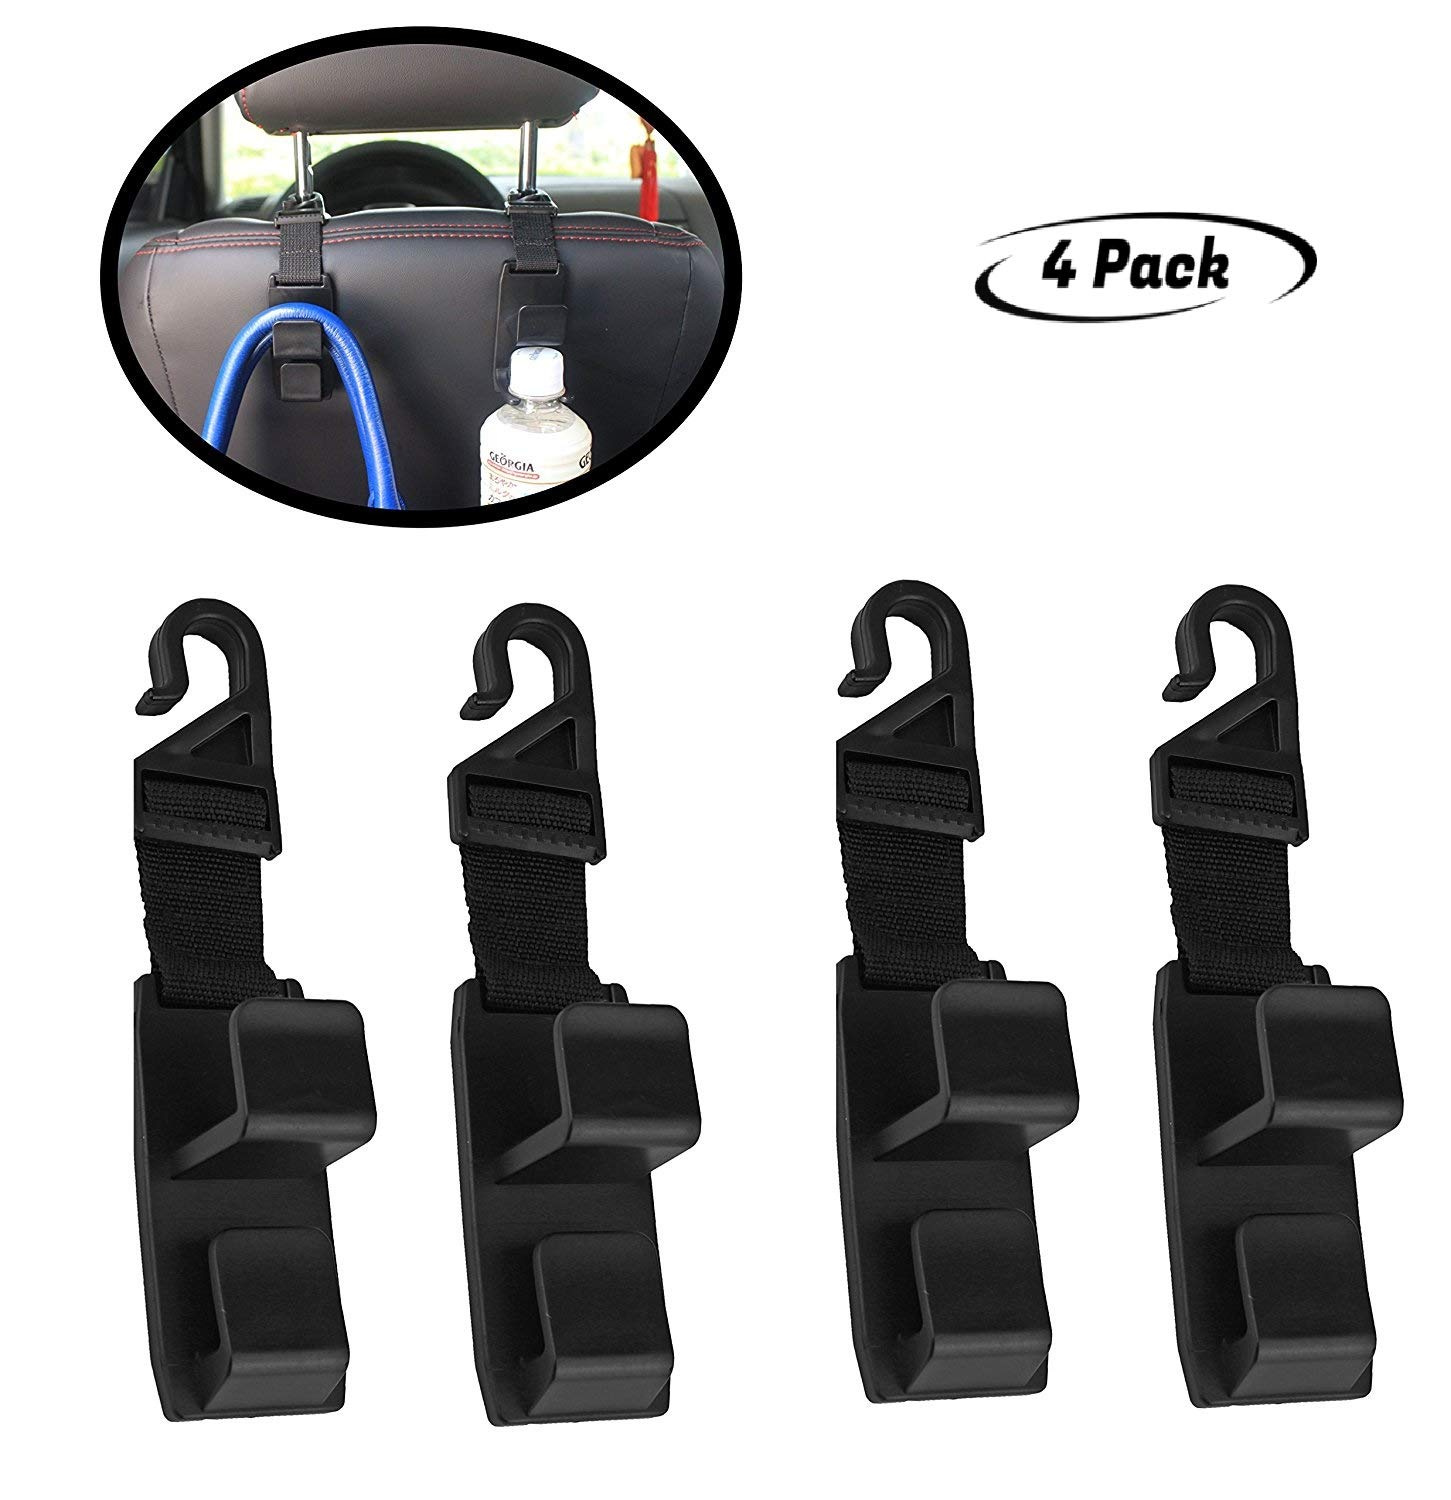 4 Pack Car Seat Headrest Hooks By Lebogner - Strong And Durable Backseat Headrest Hanger Storage For Handbags, Purses, Coats, and Grocery Bags, Universal Vehicle Car Seat Back Headrest Bottle Holder LOR-A-1024